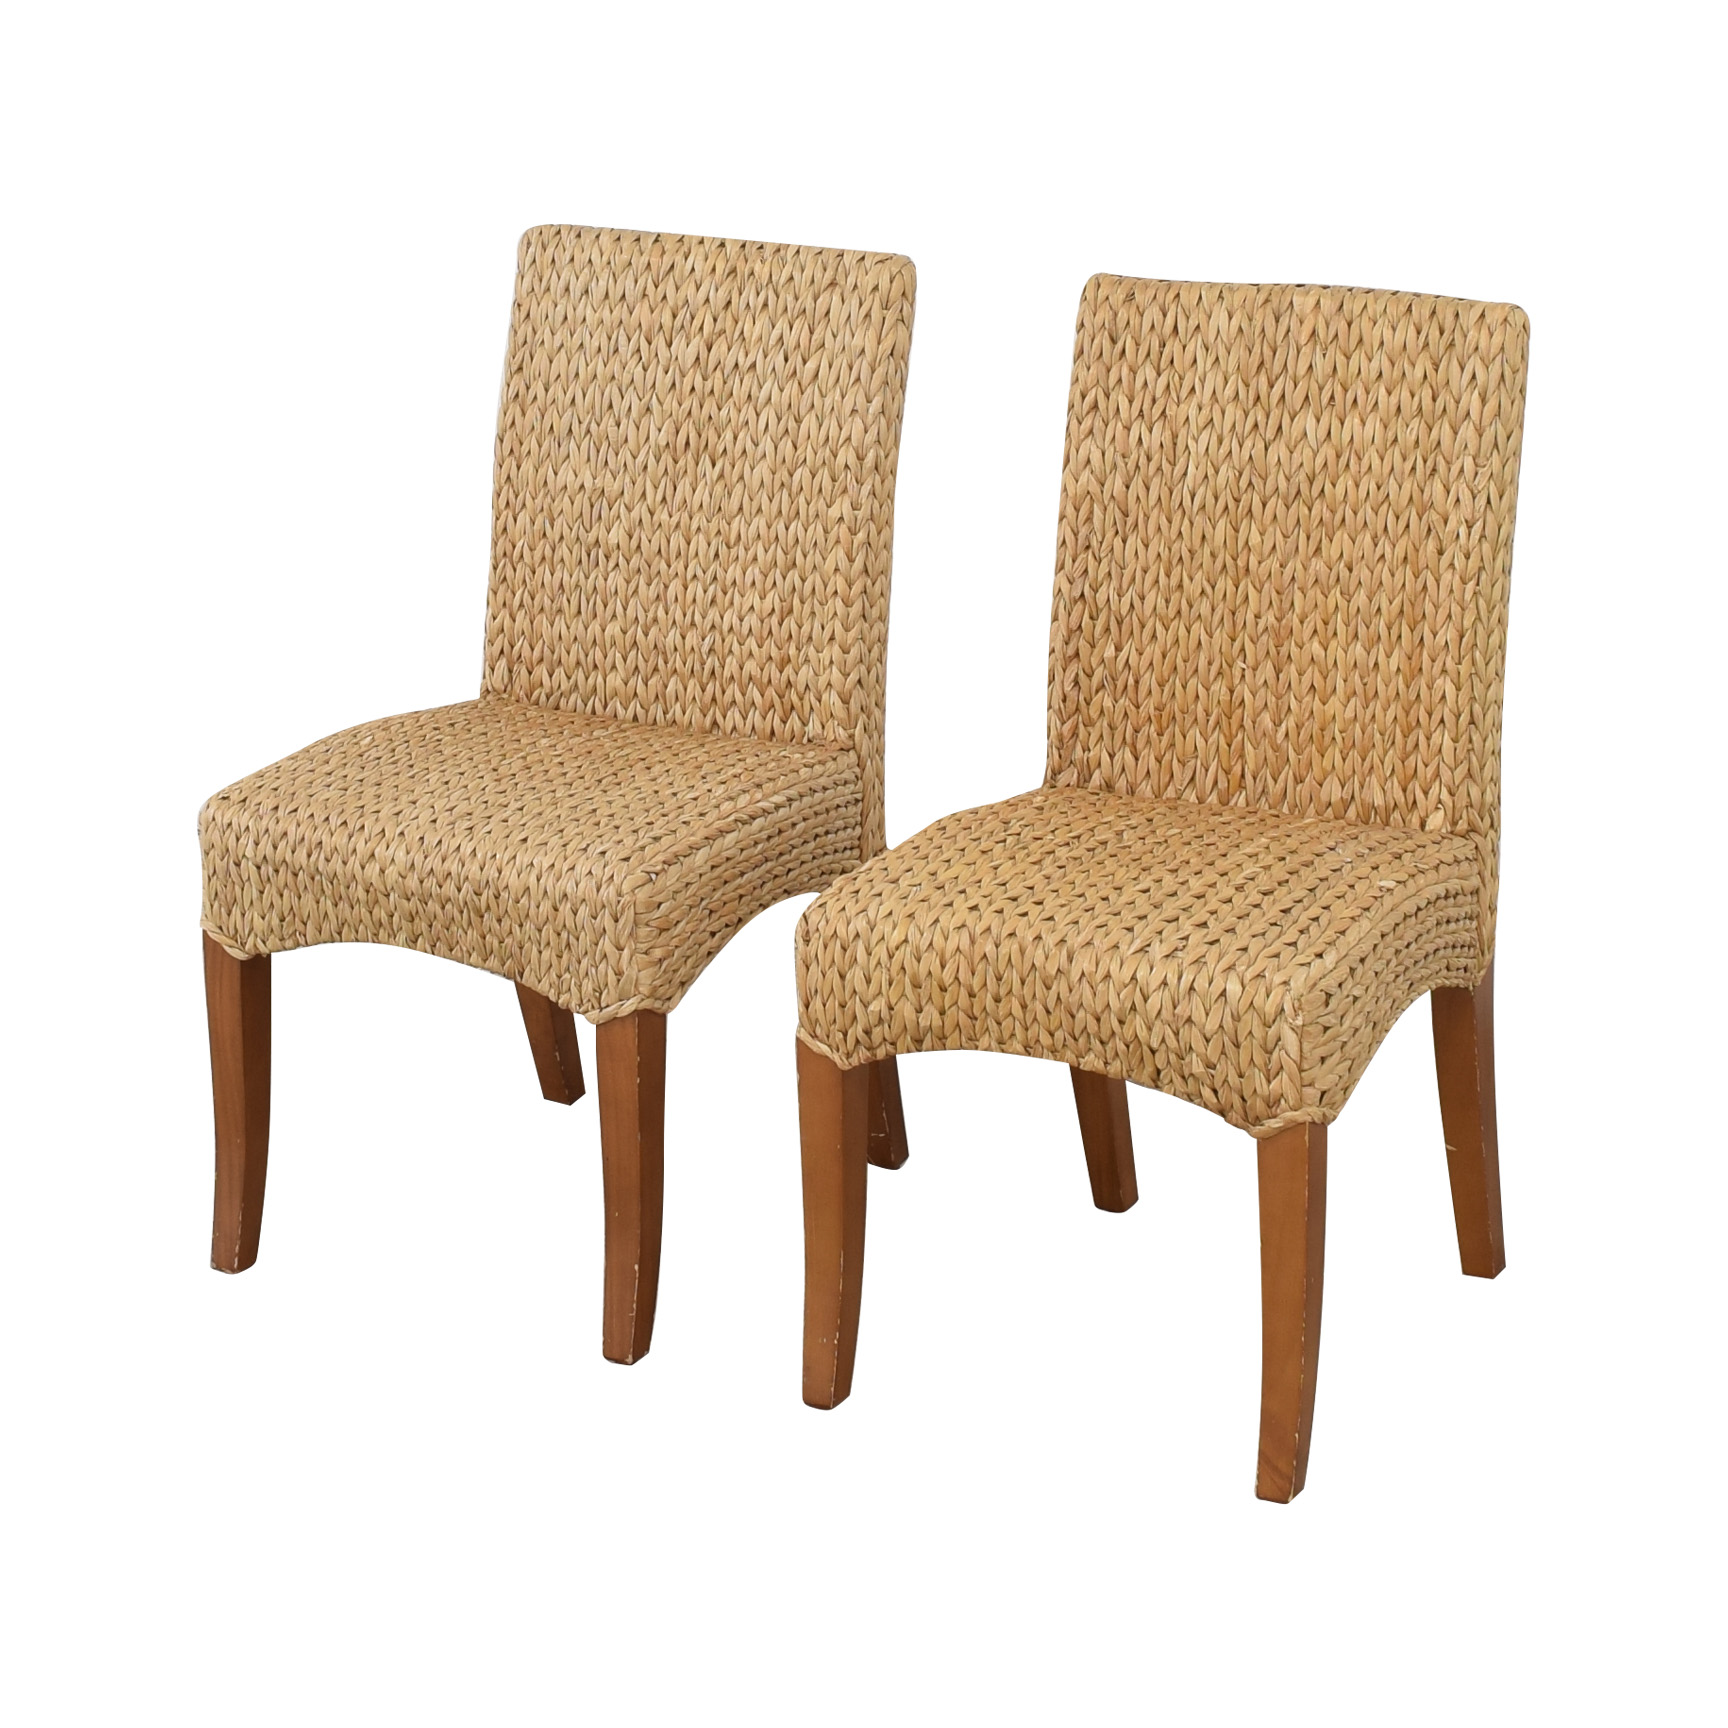 Pottery Barn Pottery Barn Seagrass Dining Side Chairs price